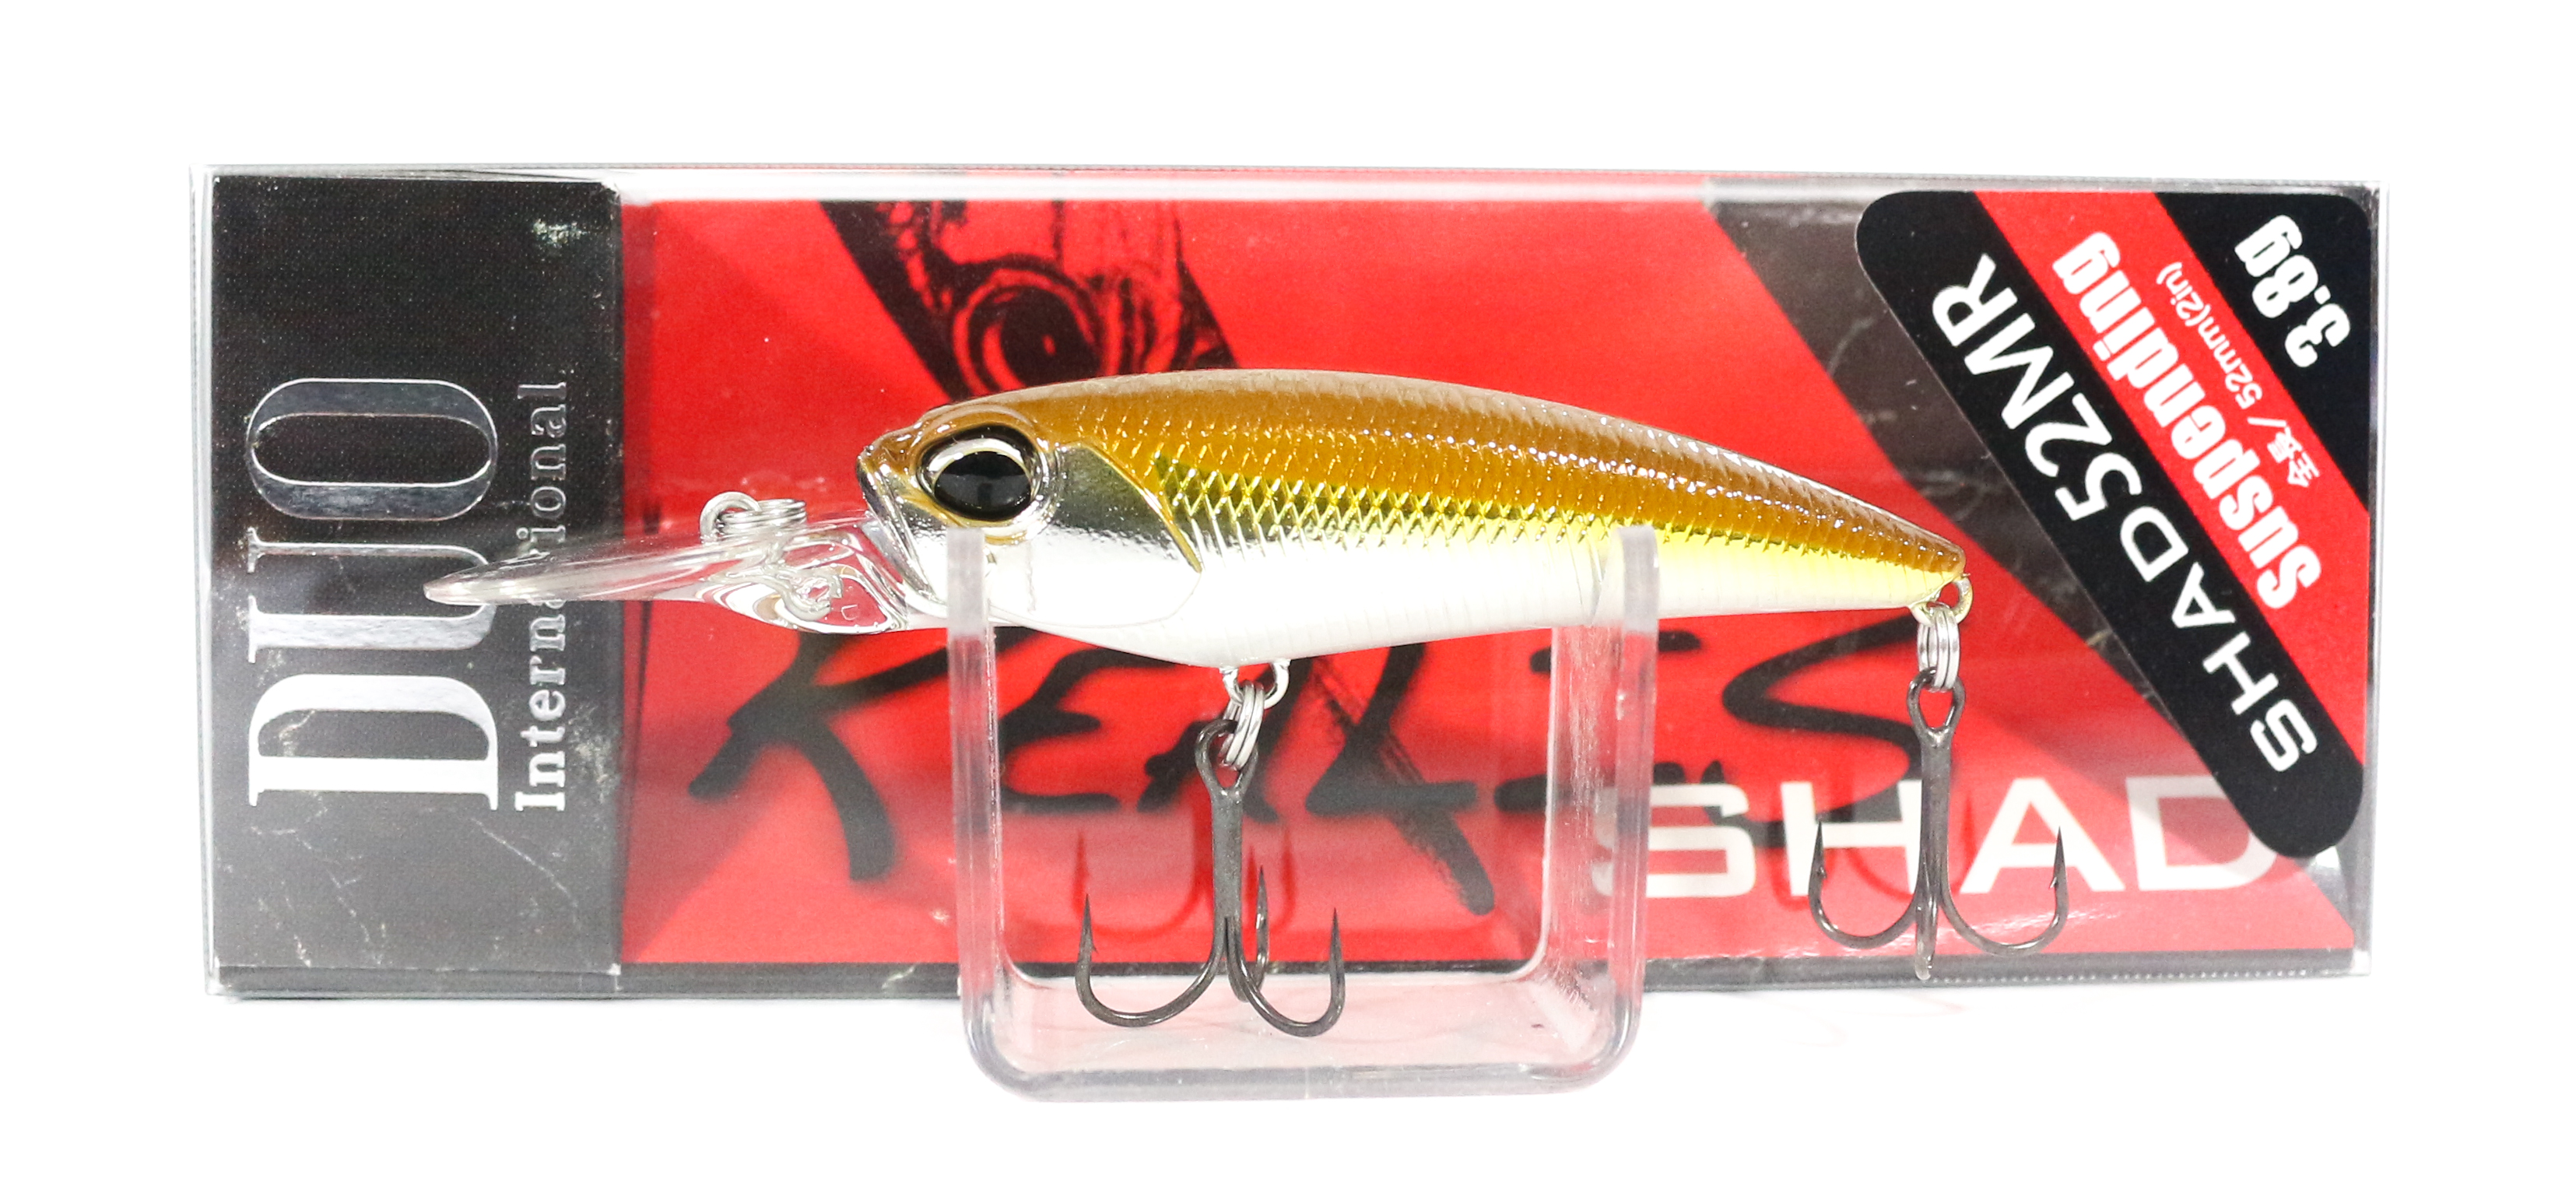 Duo Realis Shad 52 MR Suspend Lure MCC3142 (4531)